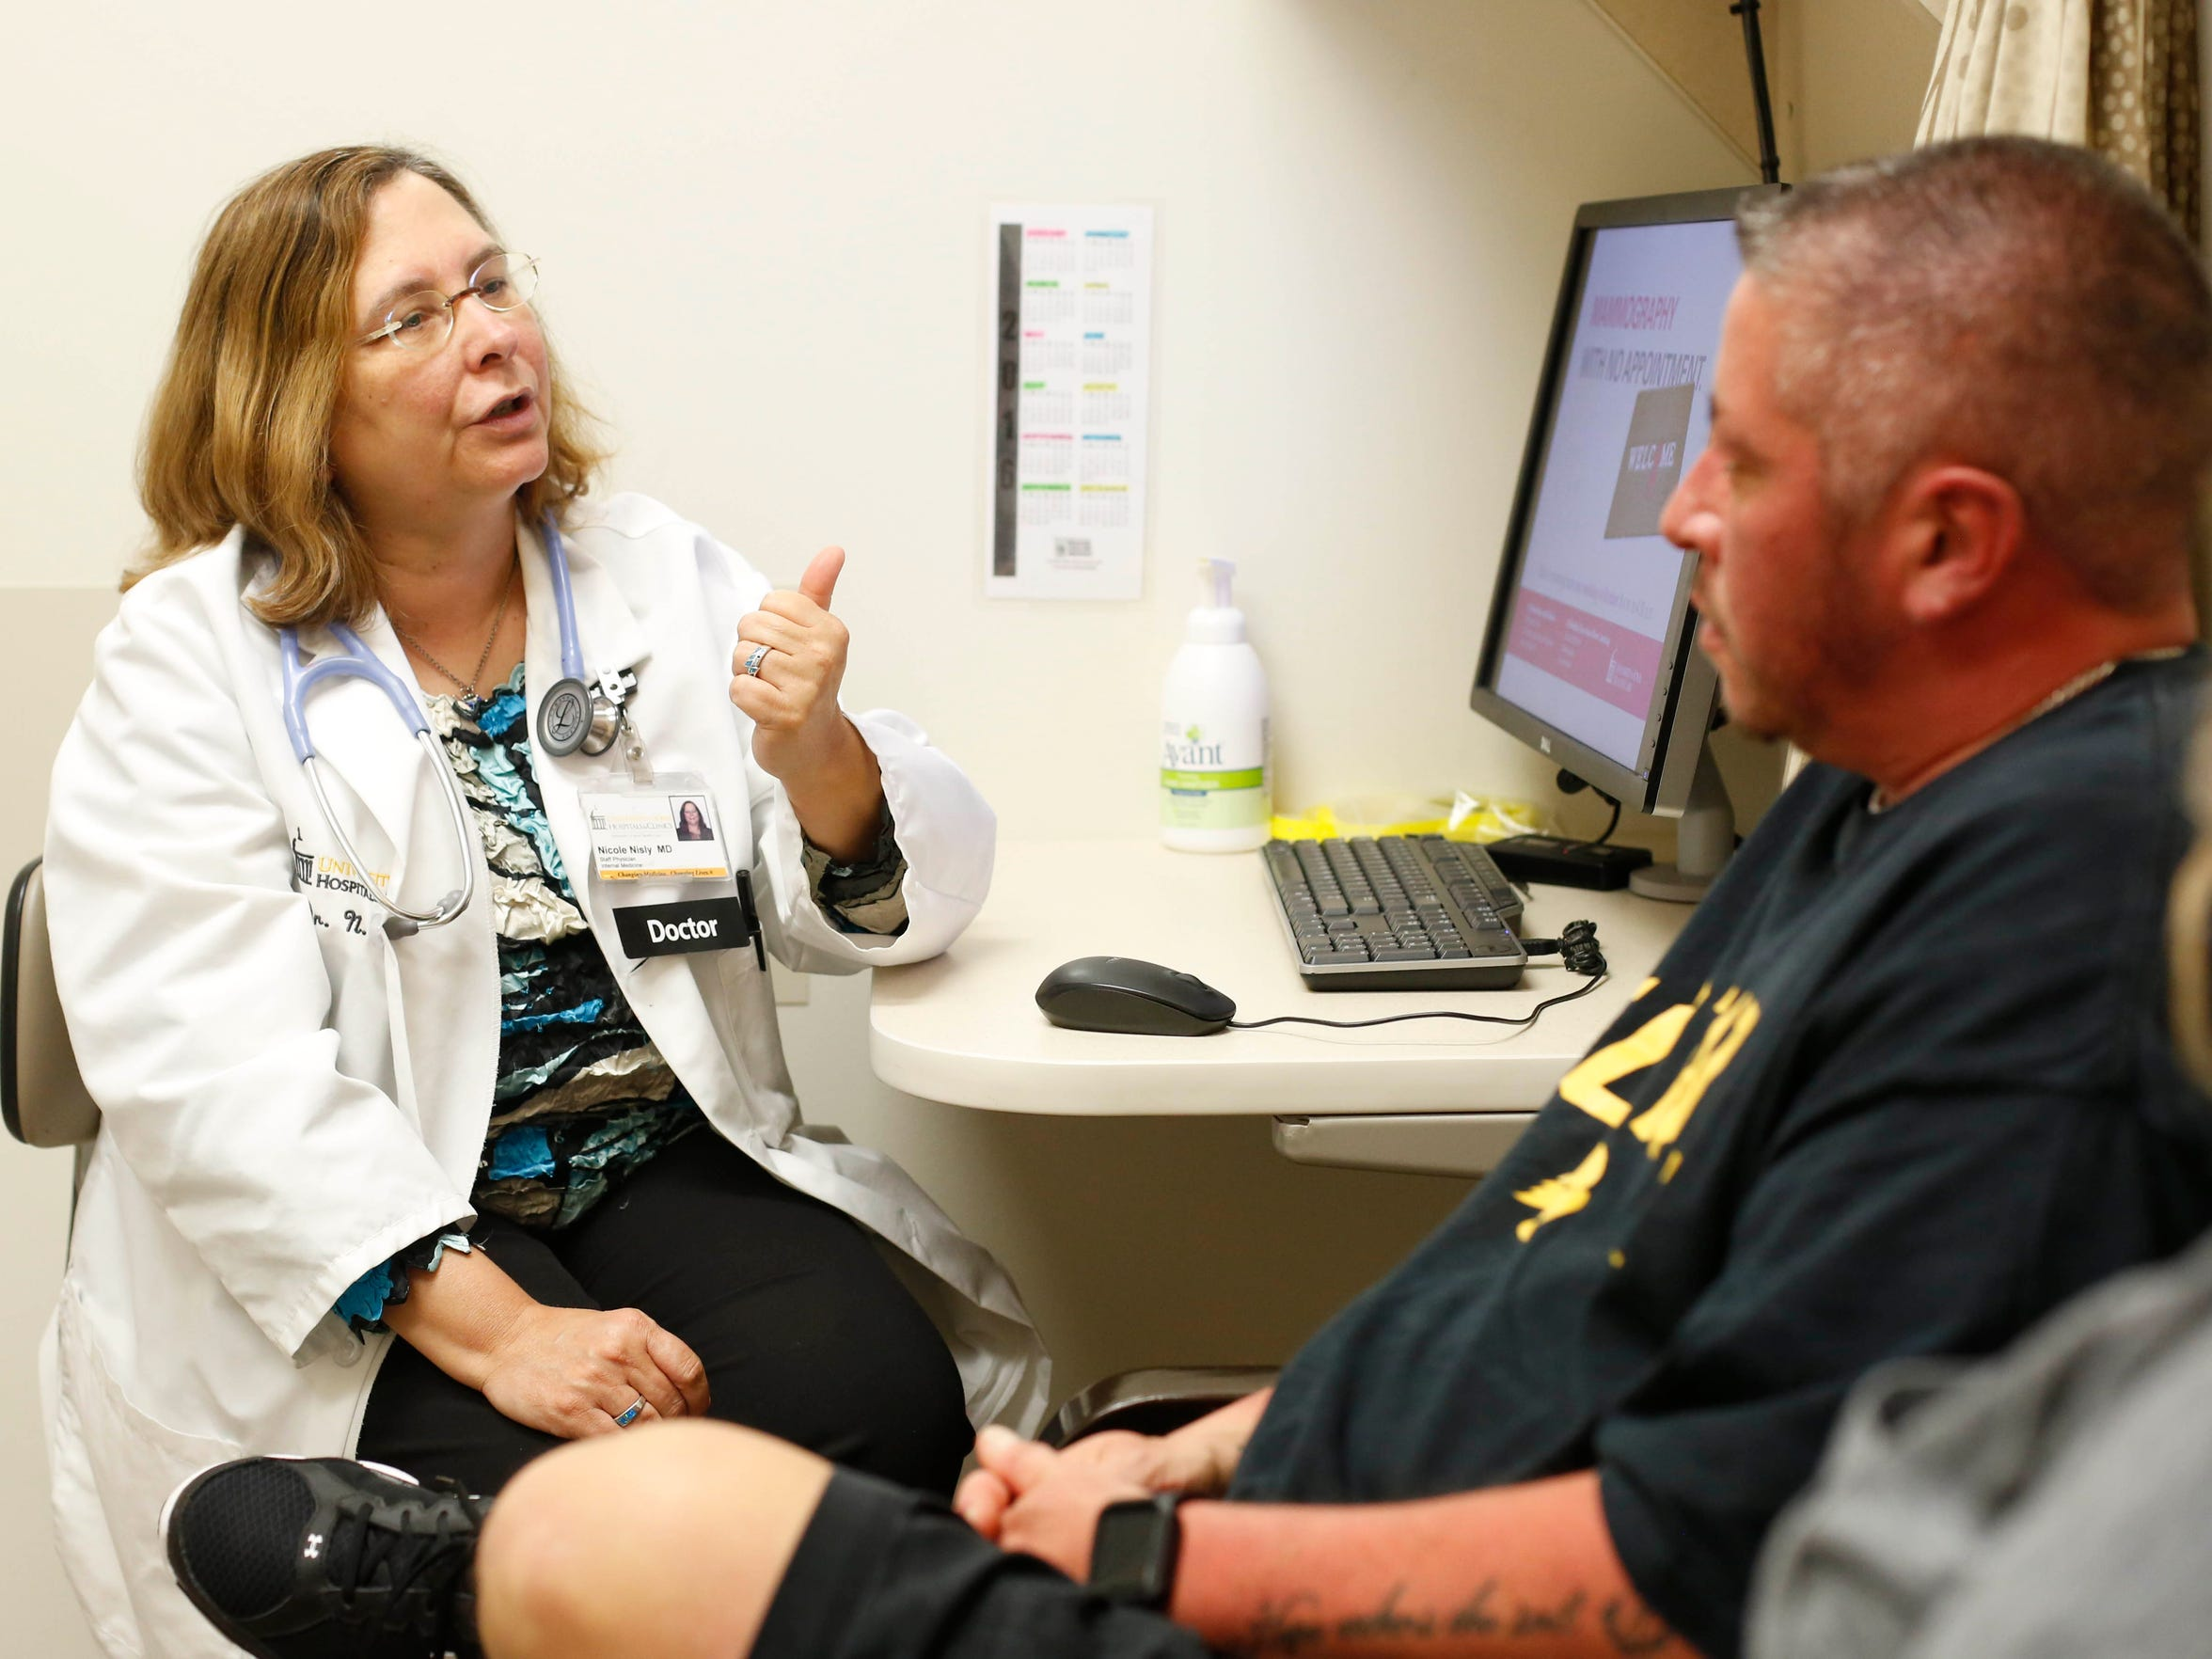 Dr. Nicole Nisly, left, talks with Aiden DeLathower about his testosterone dosage Wednesday, Oct. 19, 2016, at the University of Iowa LGBTQ Clinic in Iowa City. DeLathower credits the clinic with getting him the appropriate dose as he transitioned from female to male.